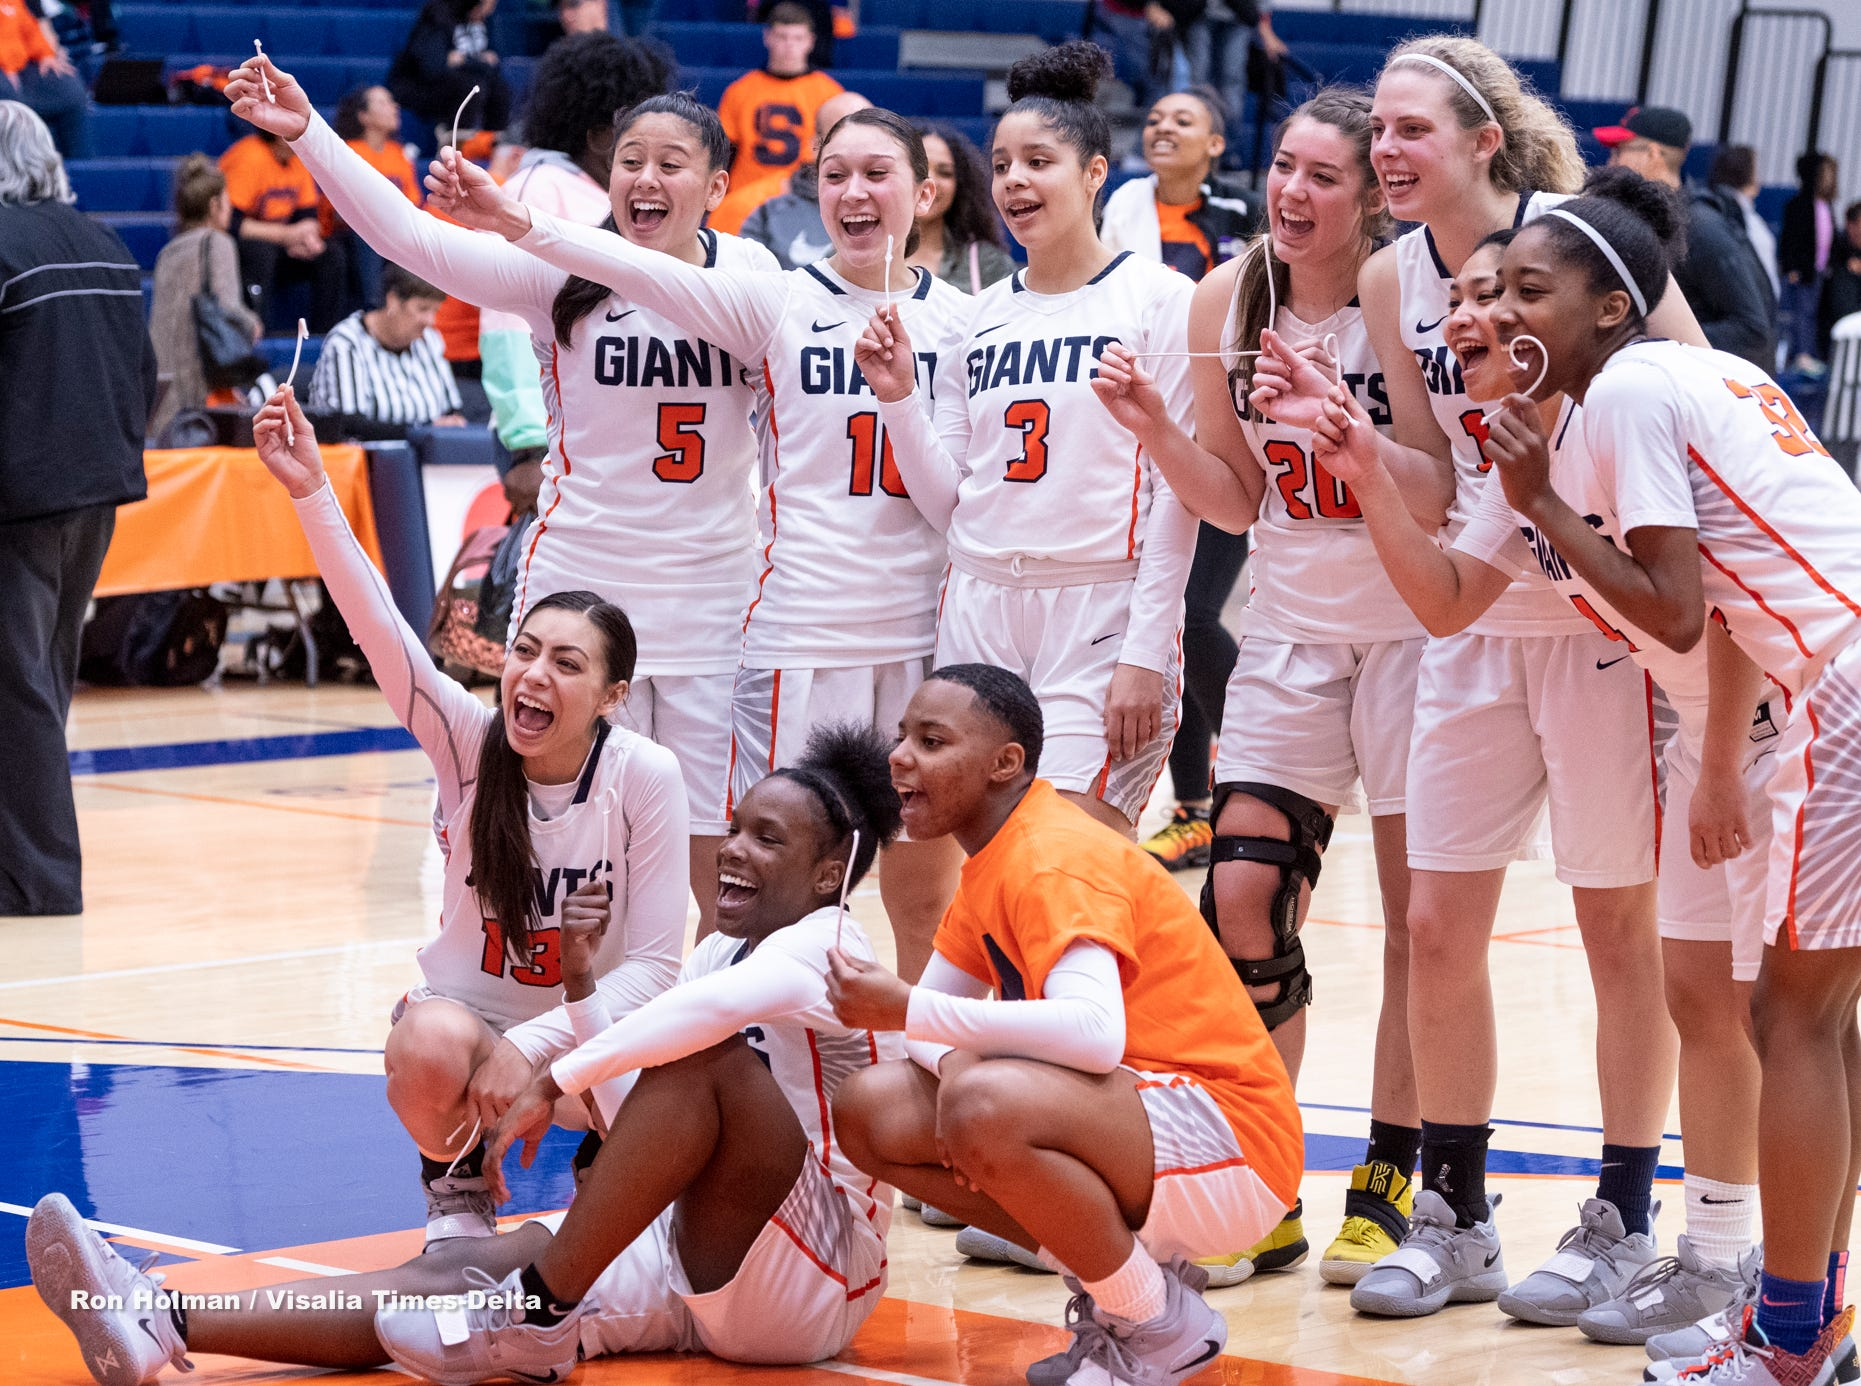 COS Women celebrate their win over San Francisco City College in a NorCal quarterfinal junior college basketball state playoff game on Saturday, March 9, 2019.